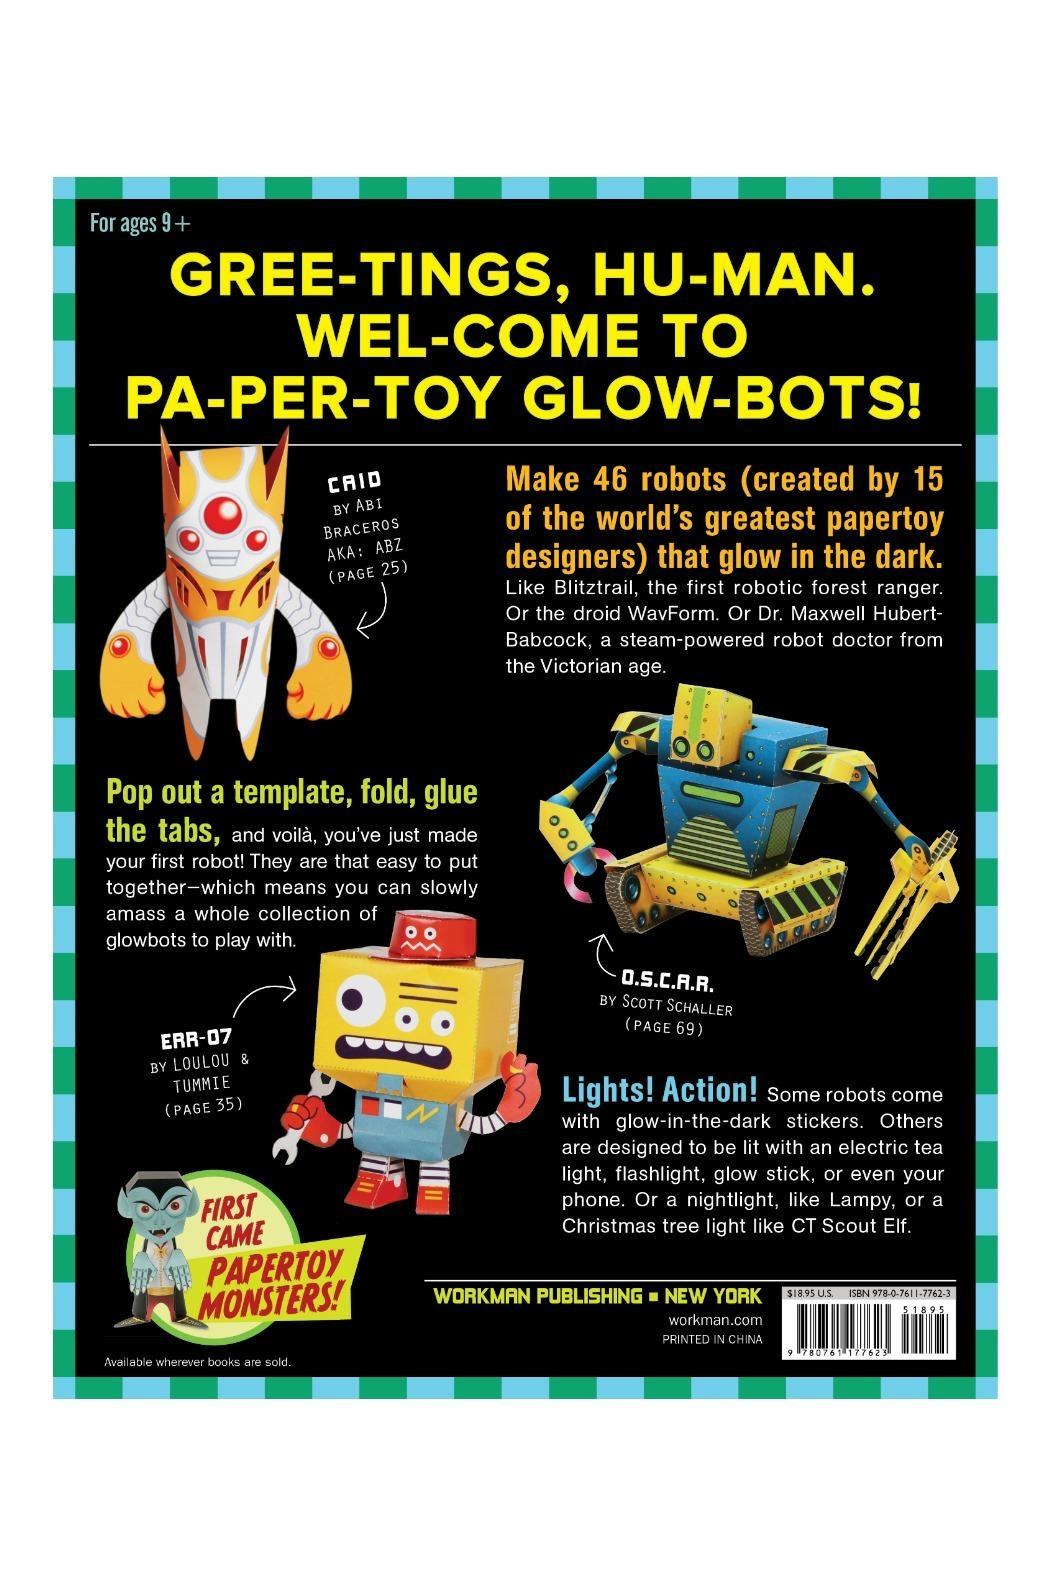 Workman Publishing Papertoy Glowbots - Front Full Image